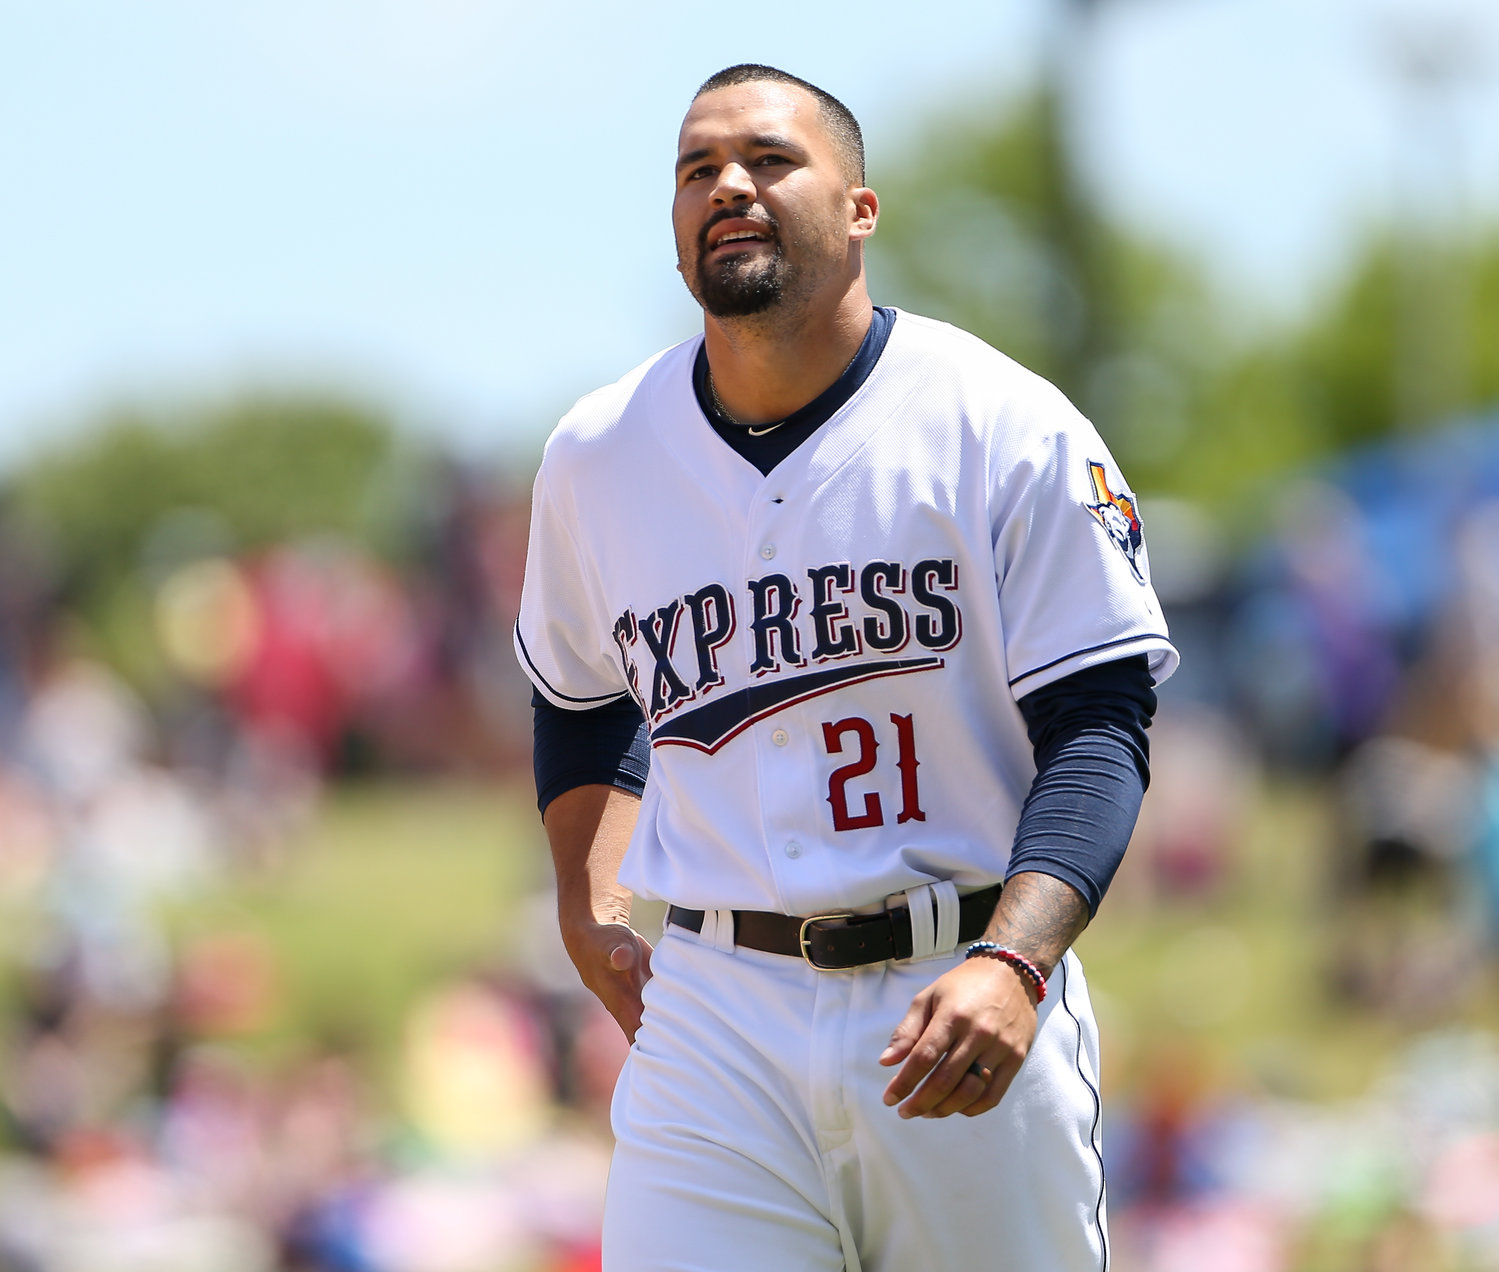 Round Rock Express third baseman Nick Tanielu (21) during a Minor League Baseball game between Round Rock and Memphis on April 15, 2019 at Dell Diamond in Round Rock, Texas.